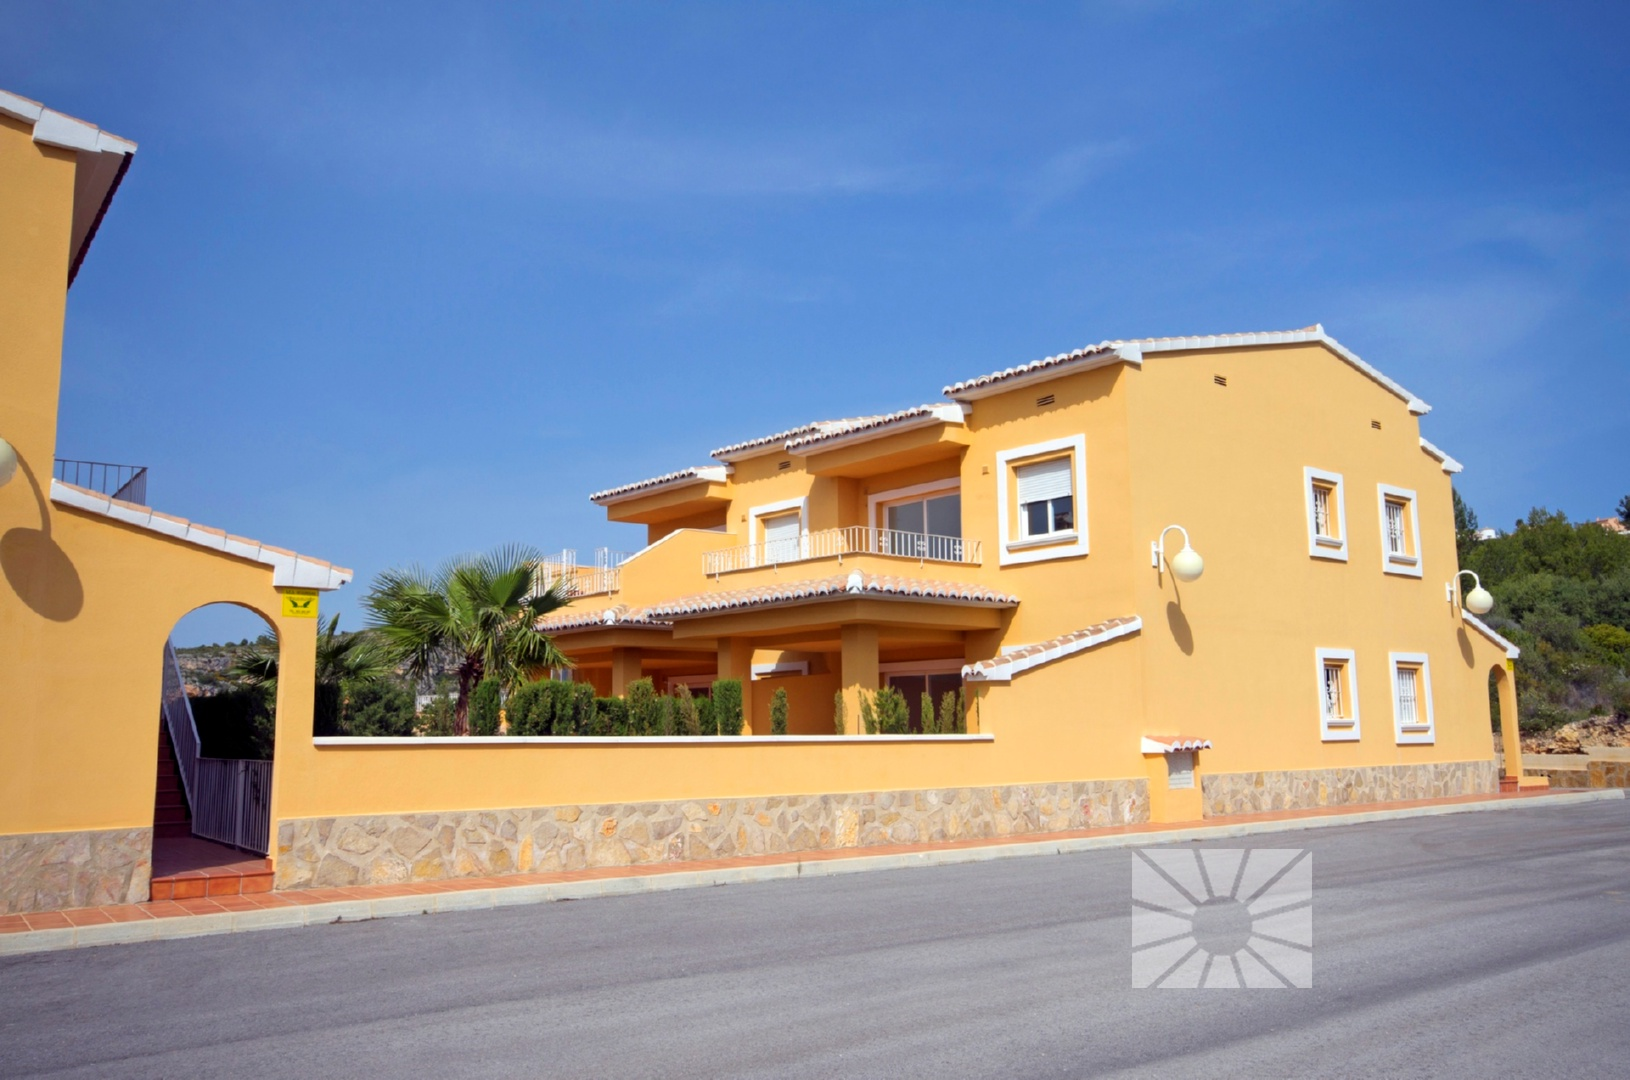 Marketing Exterior View towards Benitachell Cumbre del Sol PALM TREES JARDINES DE MONTECALA